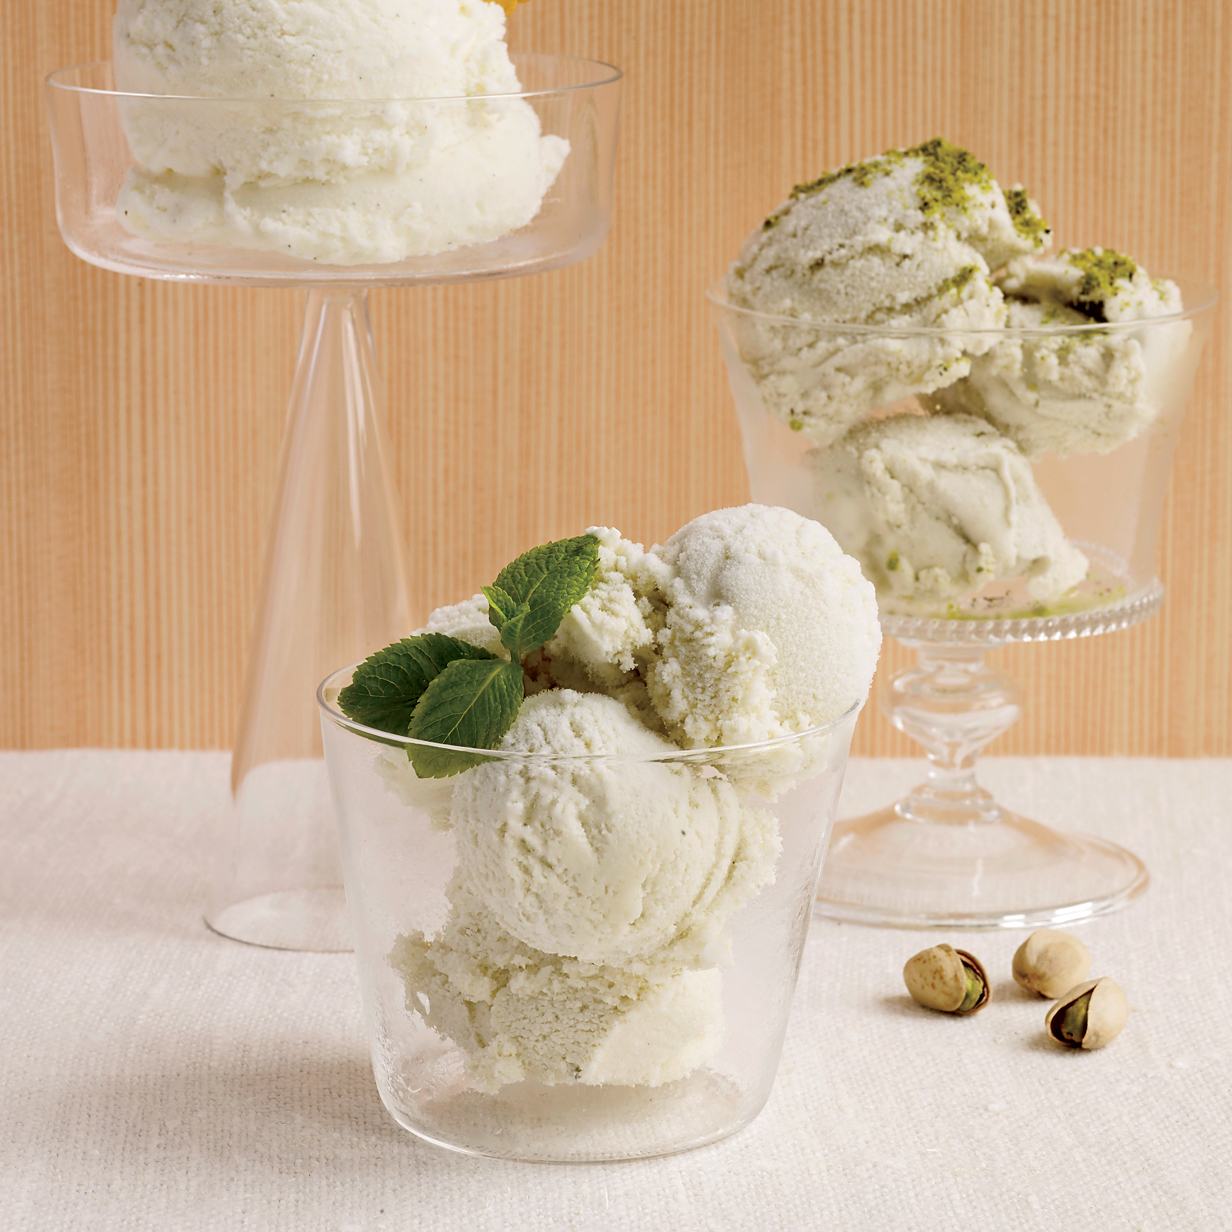 200806-r-pistachio-ice-cream.jpg